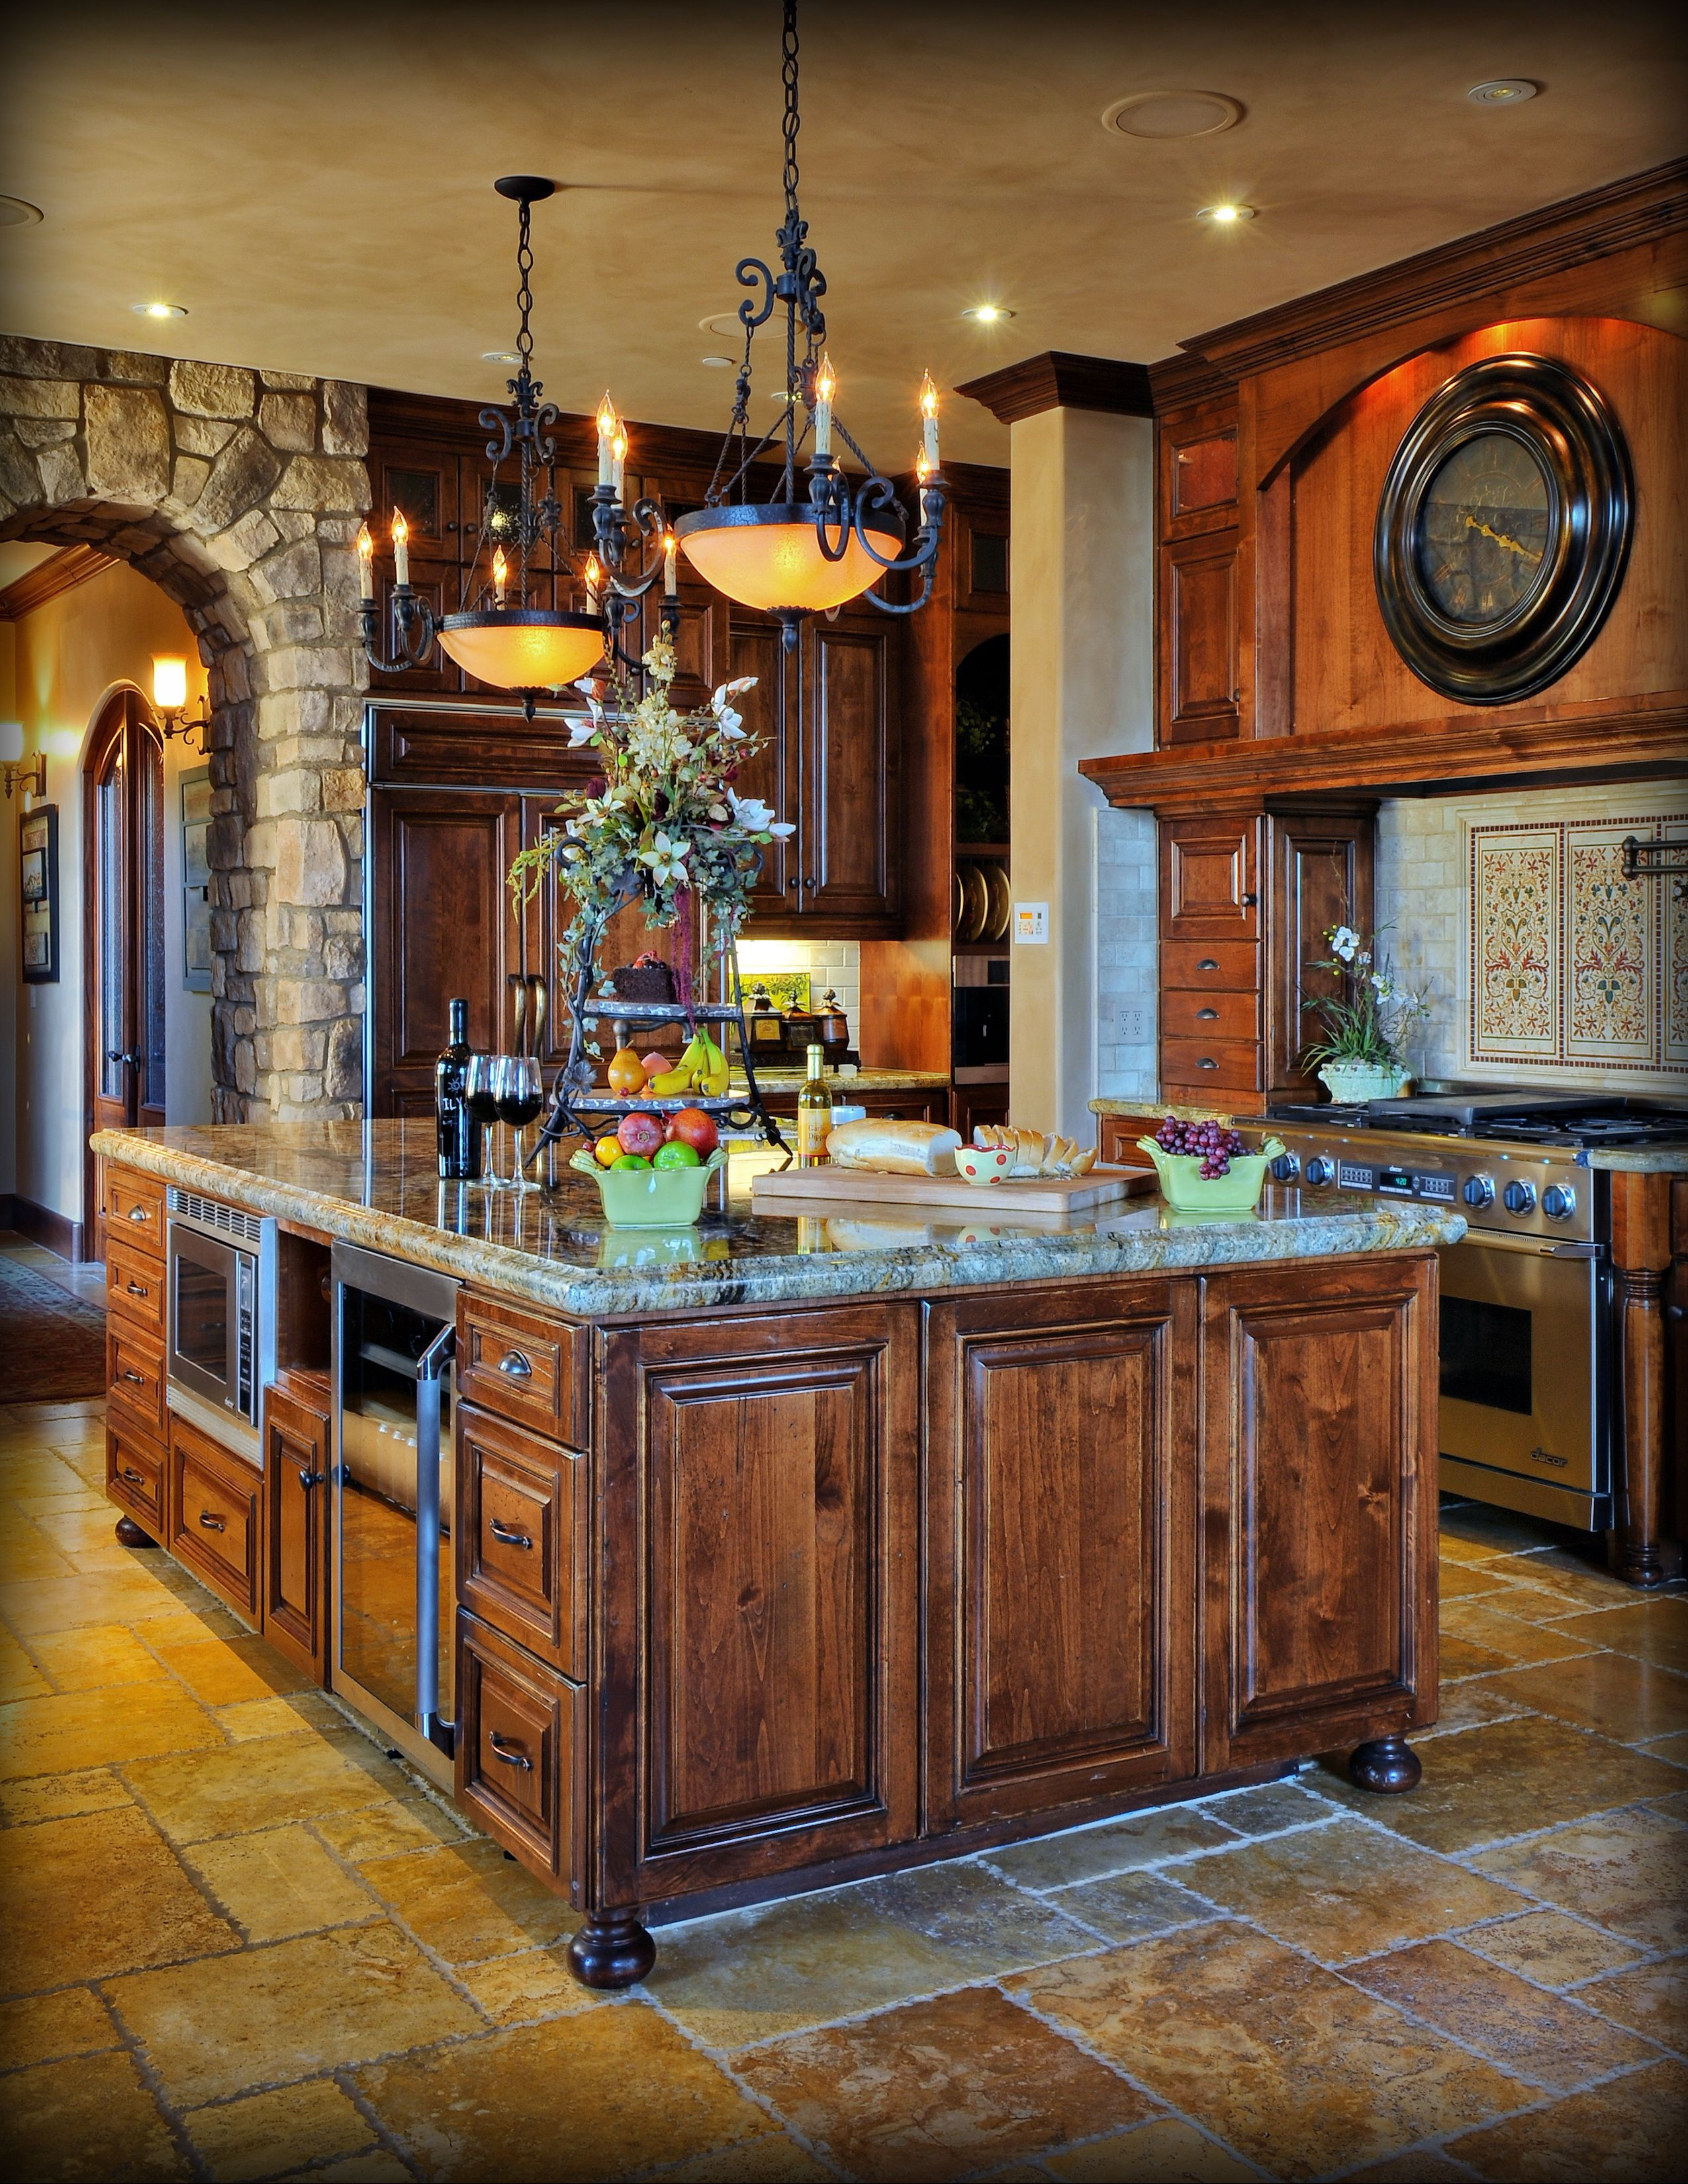 Holland S Custom Cabinets San Diego County 619 443 6081 Tuscan Kitchen Mediterranean Kitchen Decor Tuscan Decorating